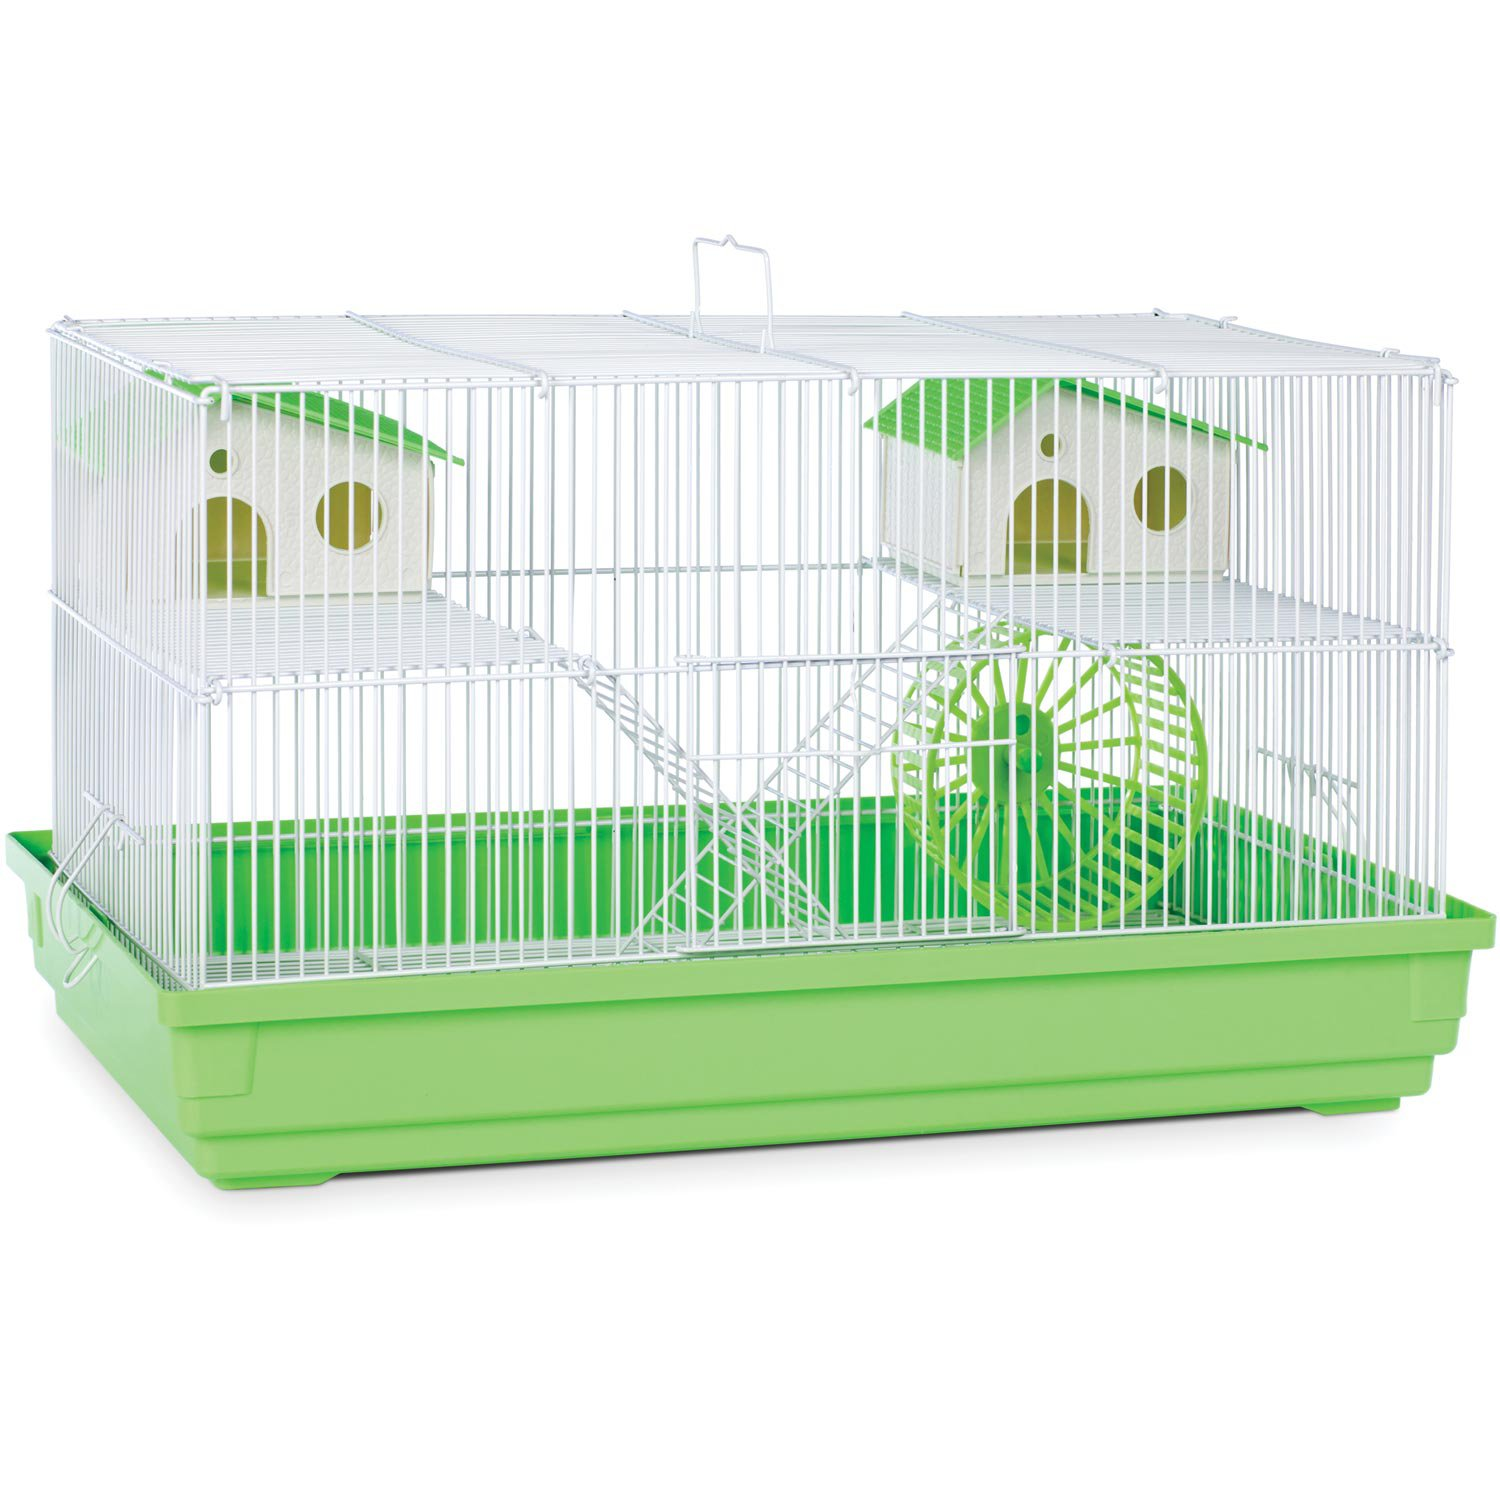 Prevue Hendryx Deluxe Small Animal Cage